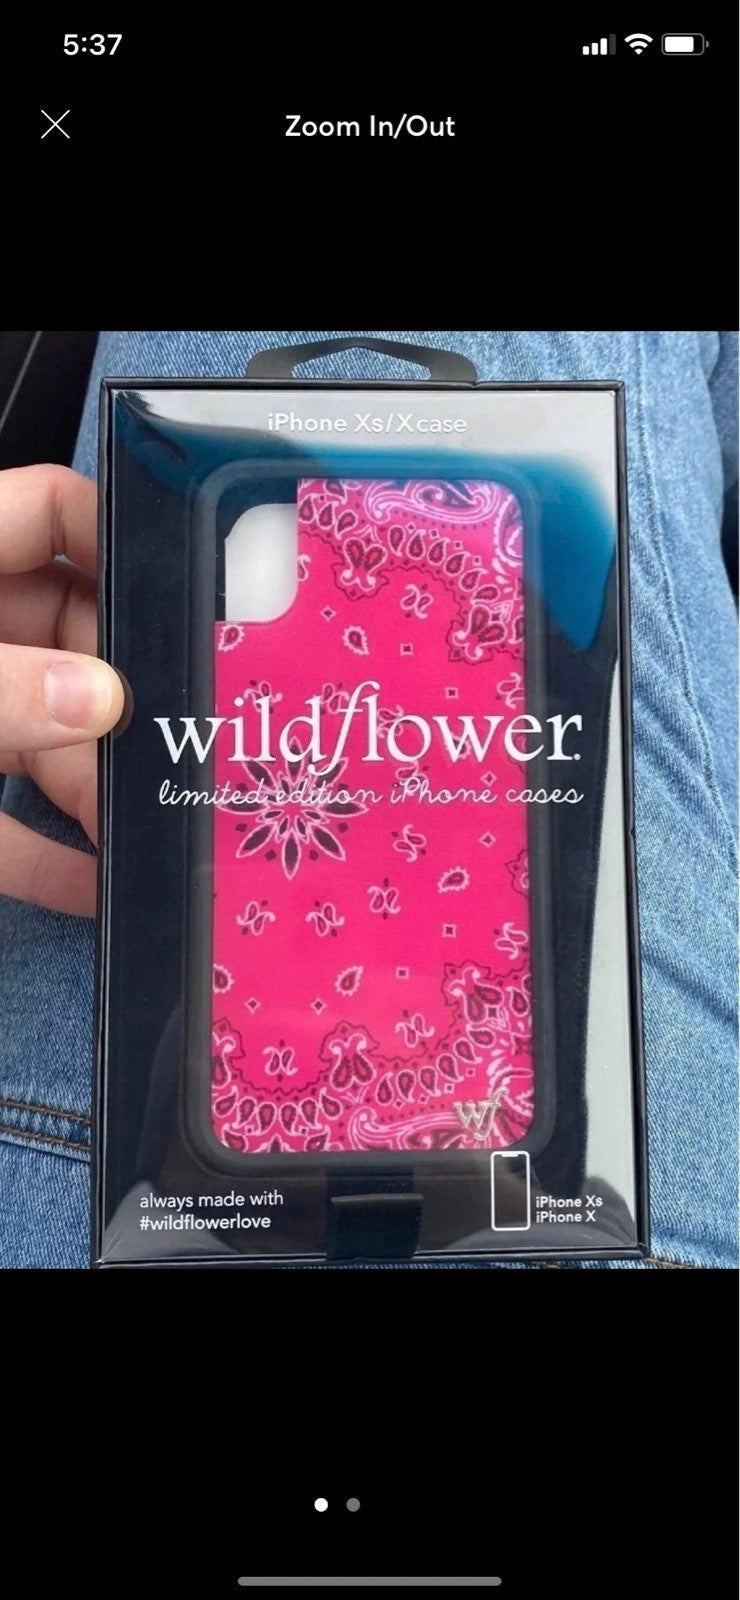 wildflower case iphone XS/X